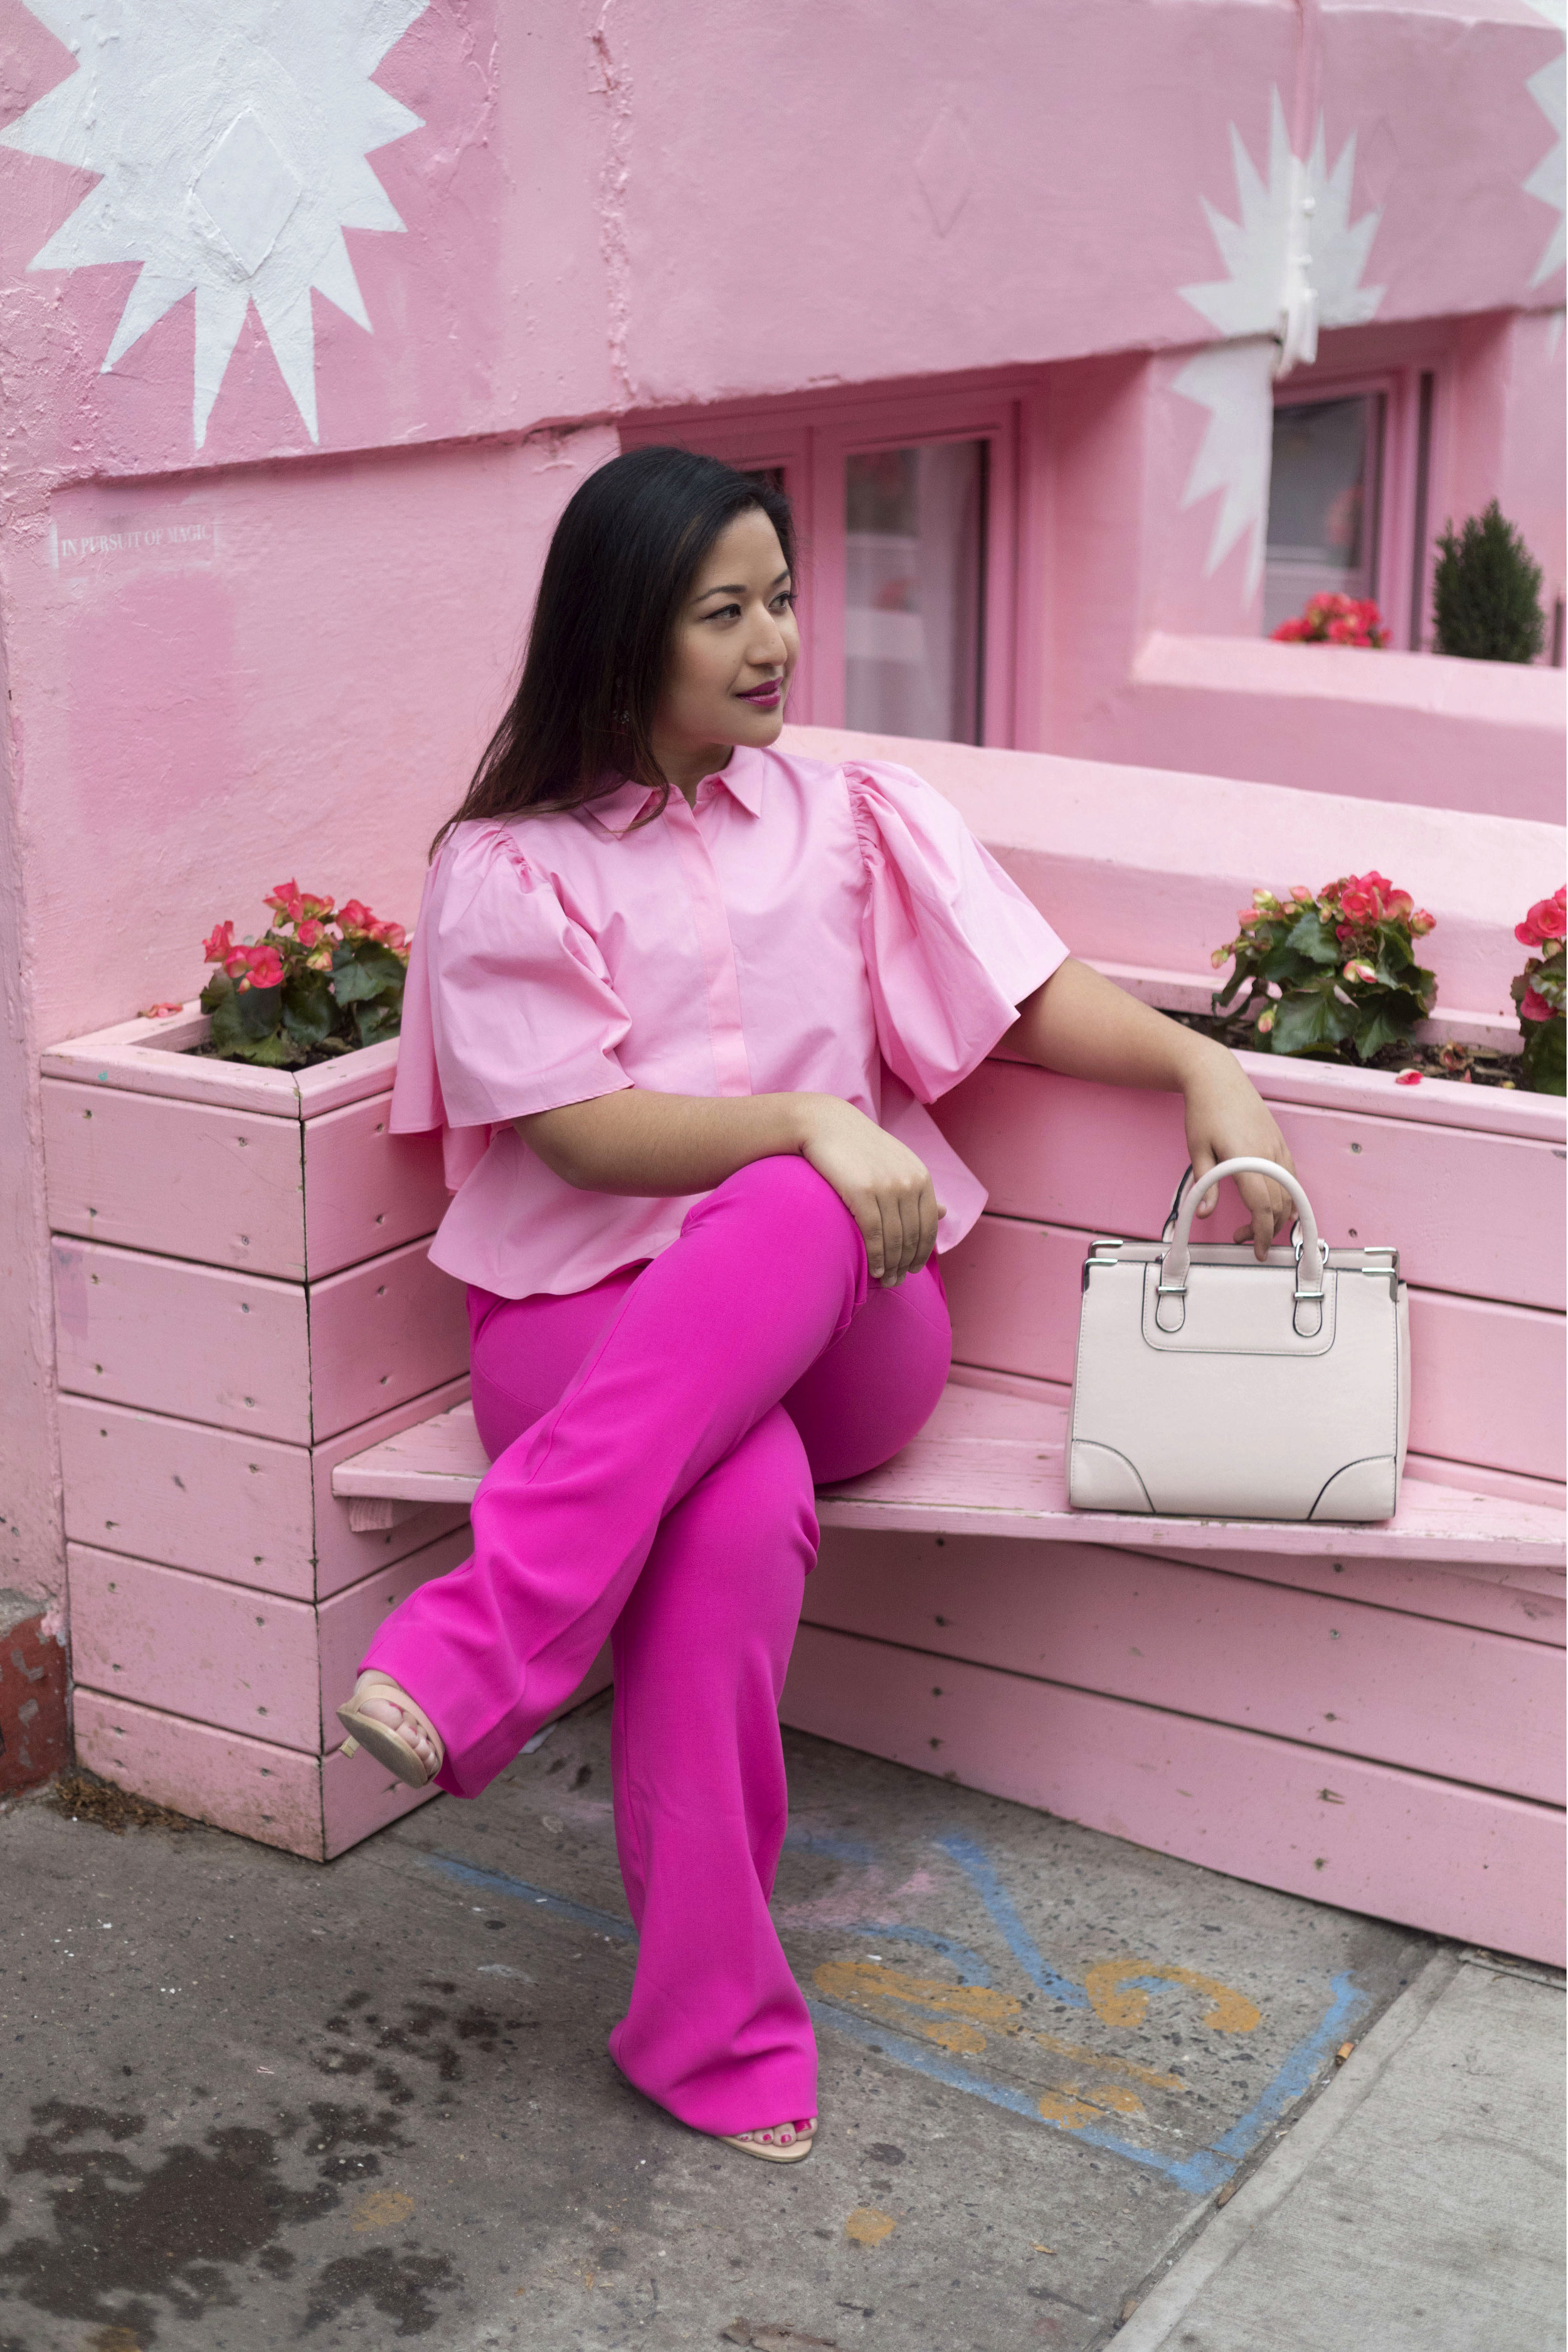 Krity S x 50 Shades of Pink6.jpg